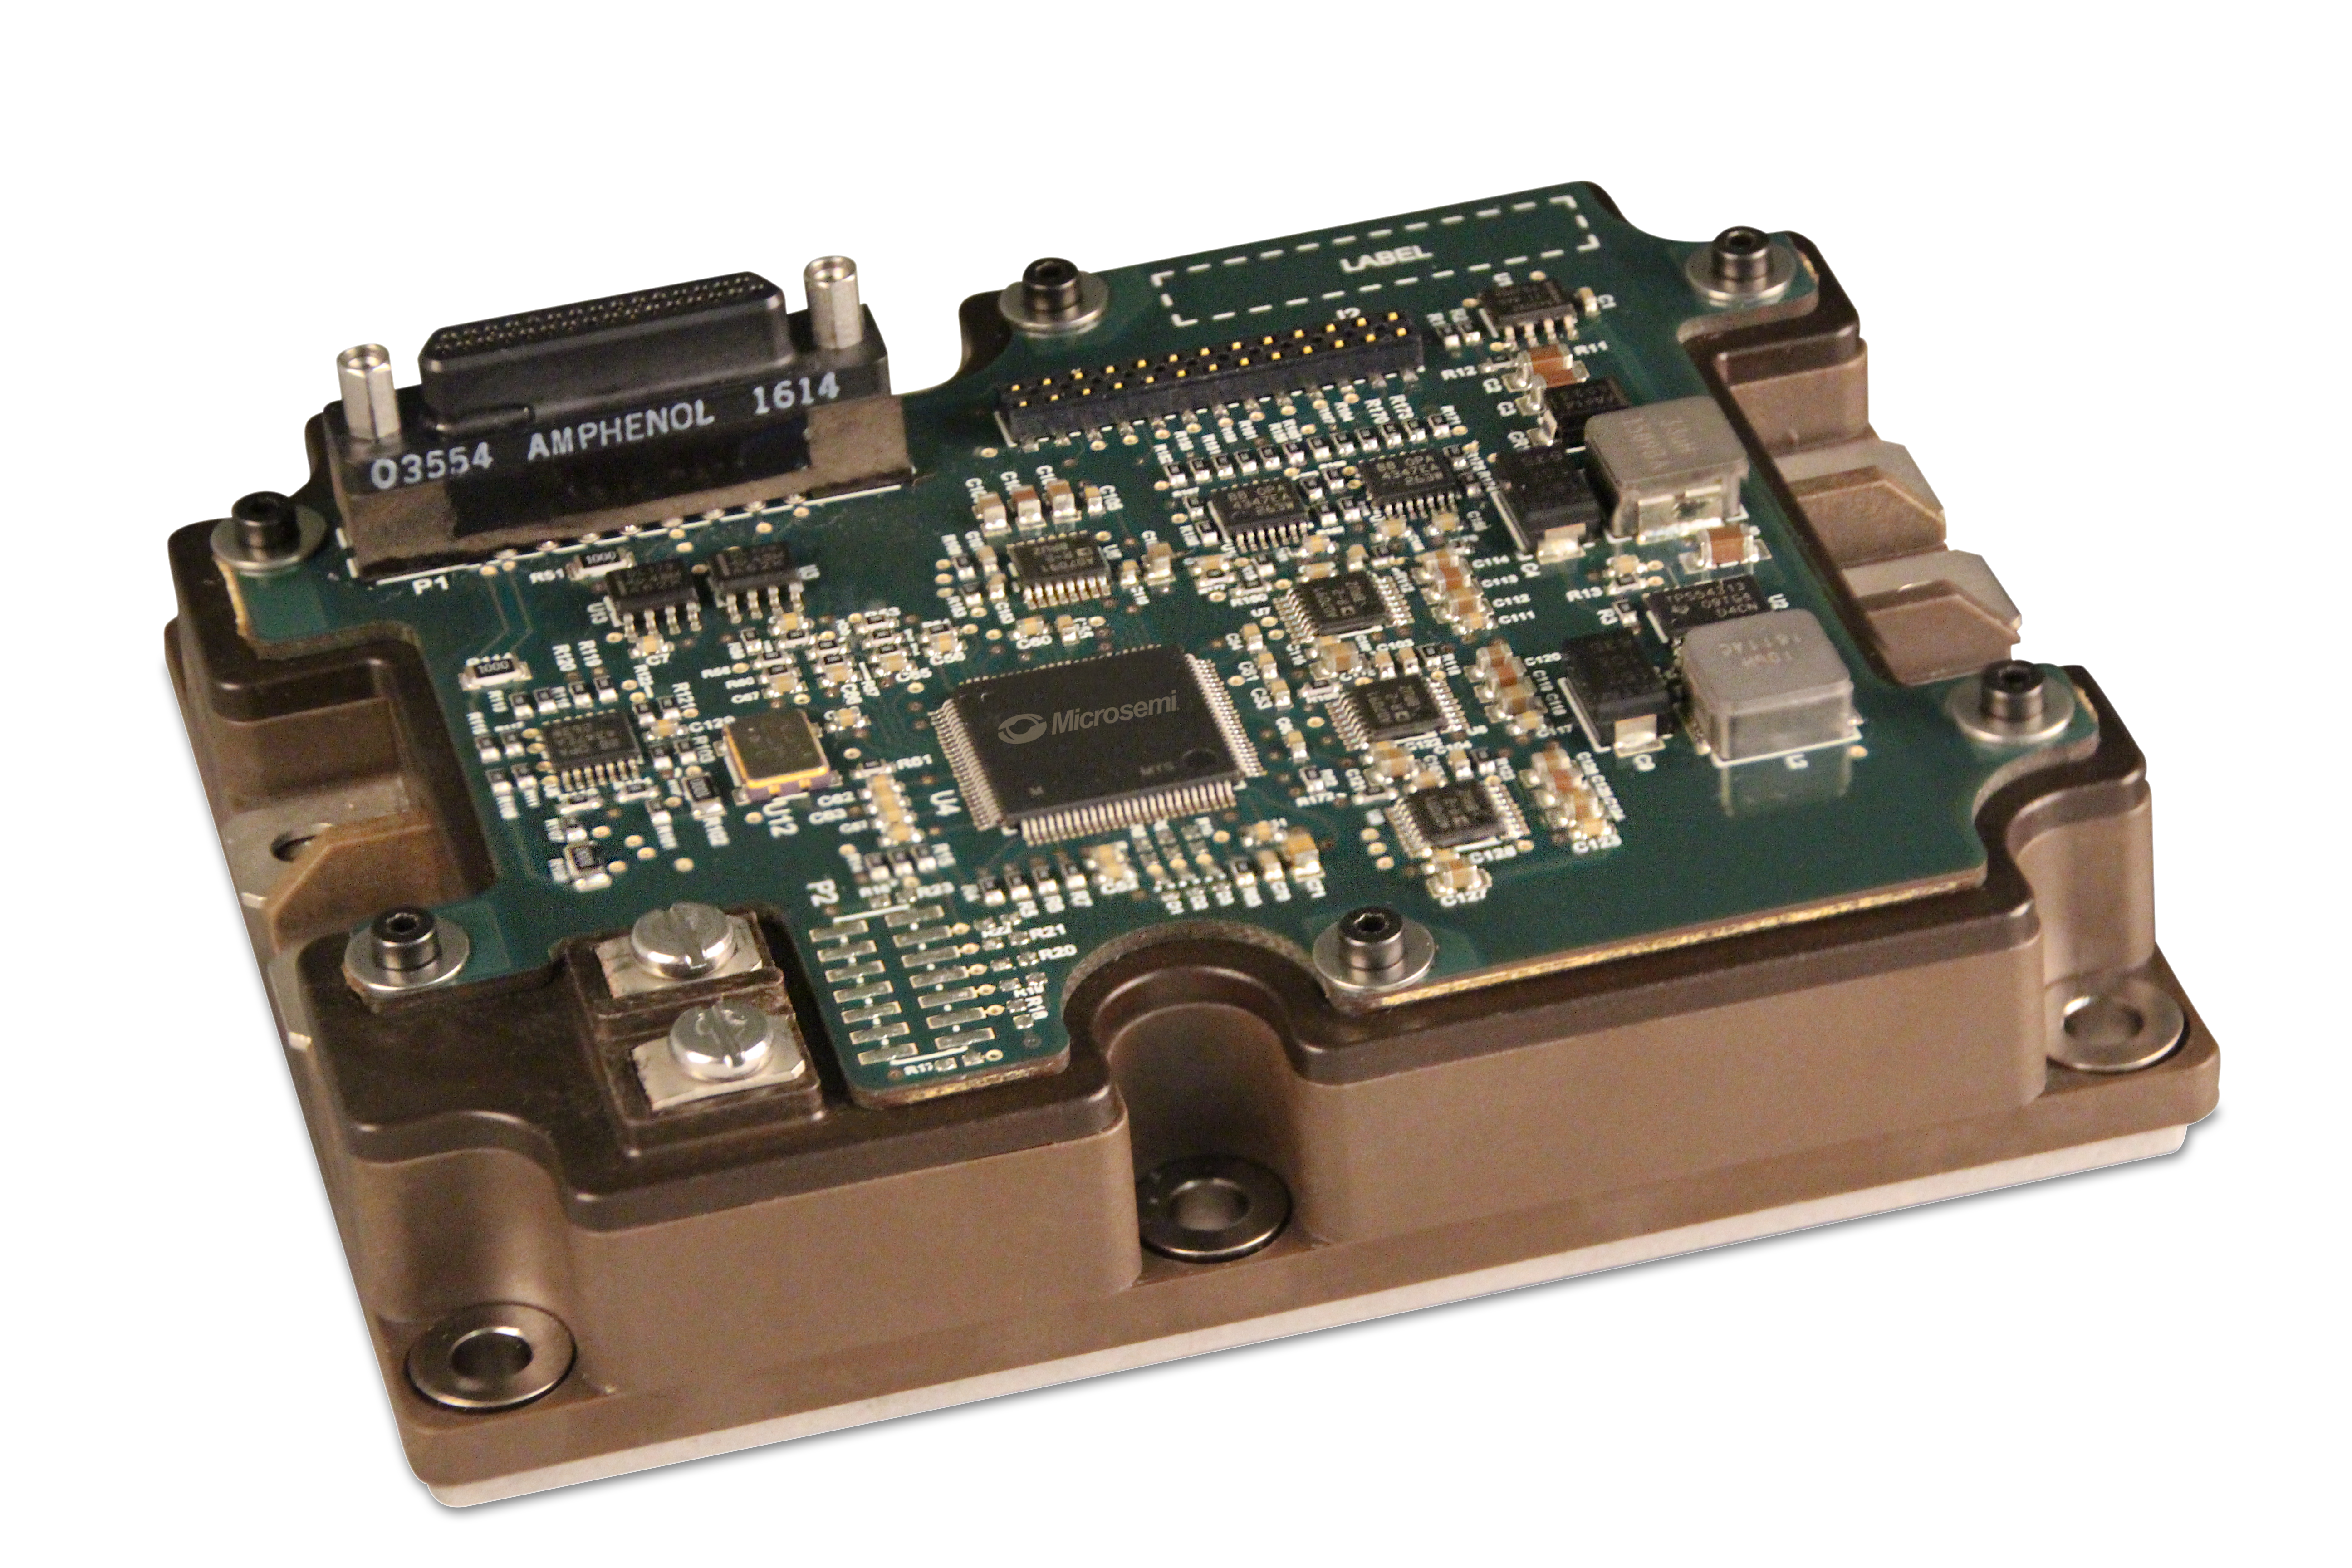 Applications Commercial Aviation Microsemi It Comes To Sustainable Product Design If Has A Circuit Board The Flagship For Flight Control Actuation System Is Power Core Module Pcm Targeted Specifically At More